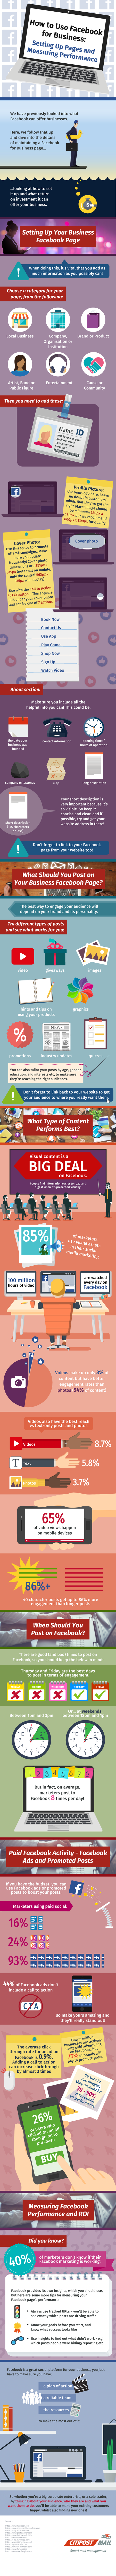 Infographic outlines a range of Facebook business Page best practices